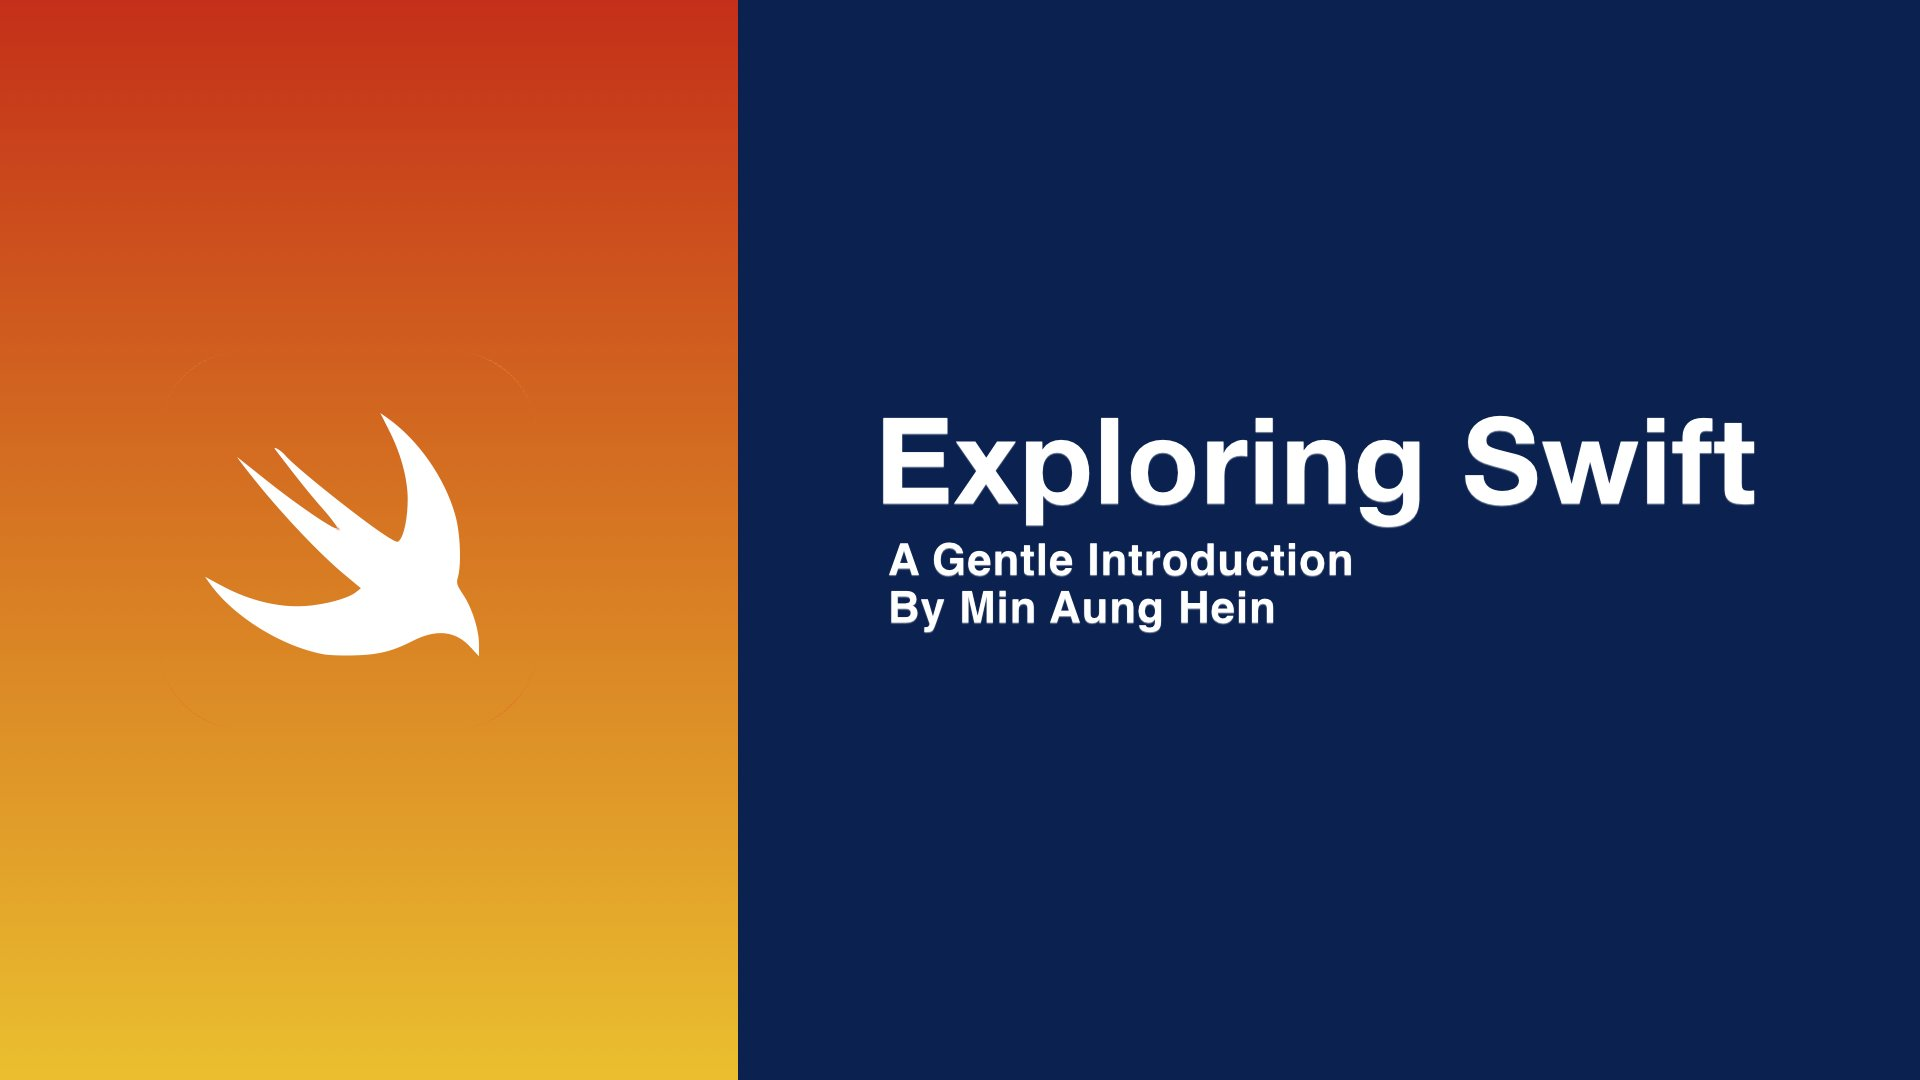 Exploring Swift: A Gentle Introduction